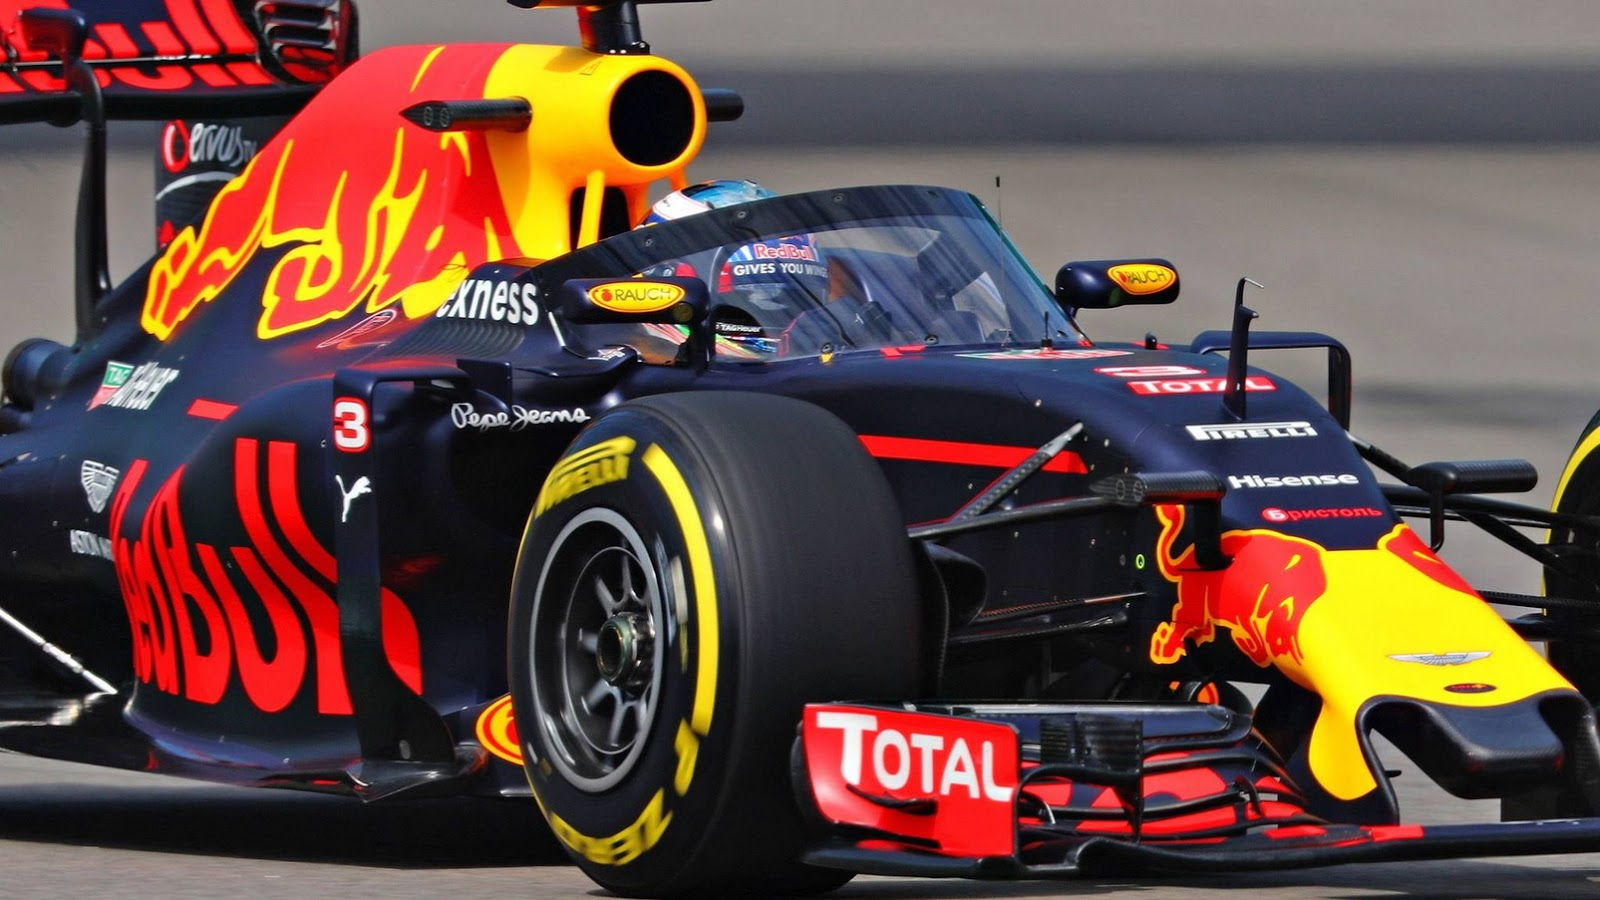 red bull racing 39 s aeroscreen still an option for 2018 f1 season carscoops. Black Bedroom Furniture Sets. Home Design Ideas